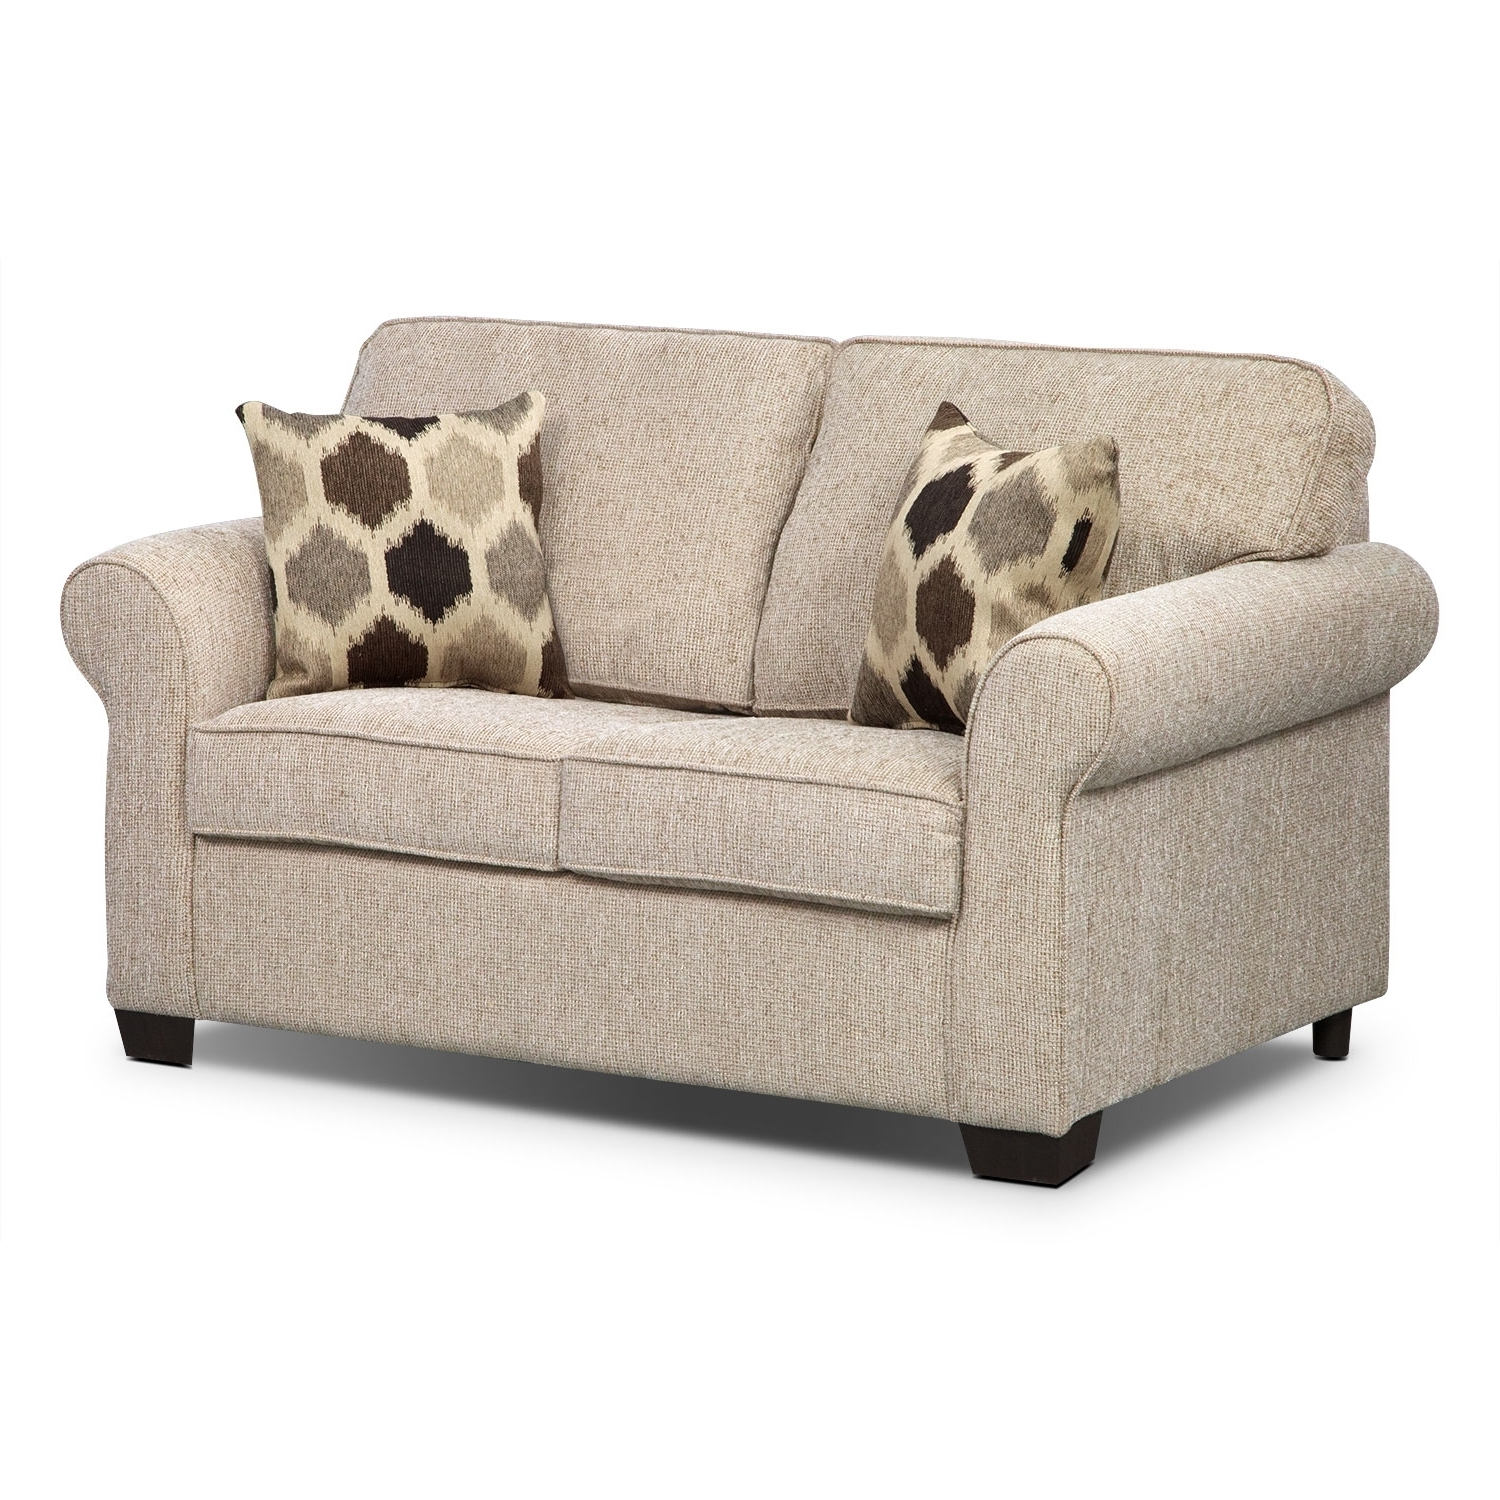 Jennifer Convertibles Sectional Sofas throughout Preferred Sofa : Fantasy Convertible Sleeper Sofa Encore Convertible Sleeper